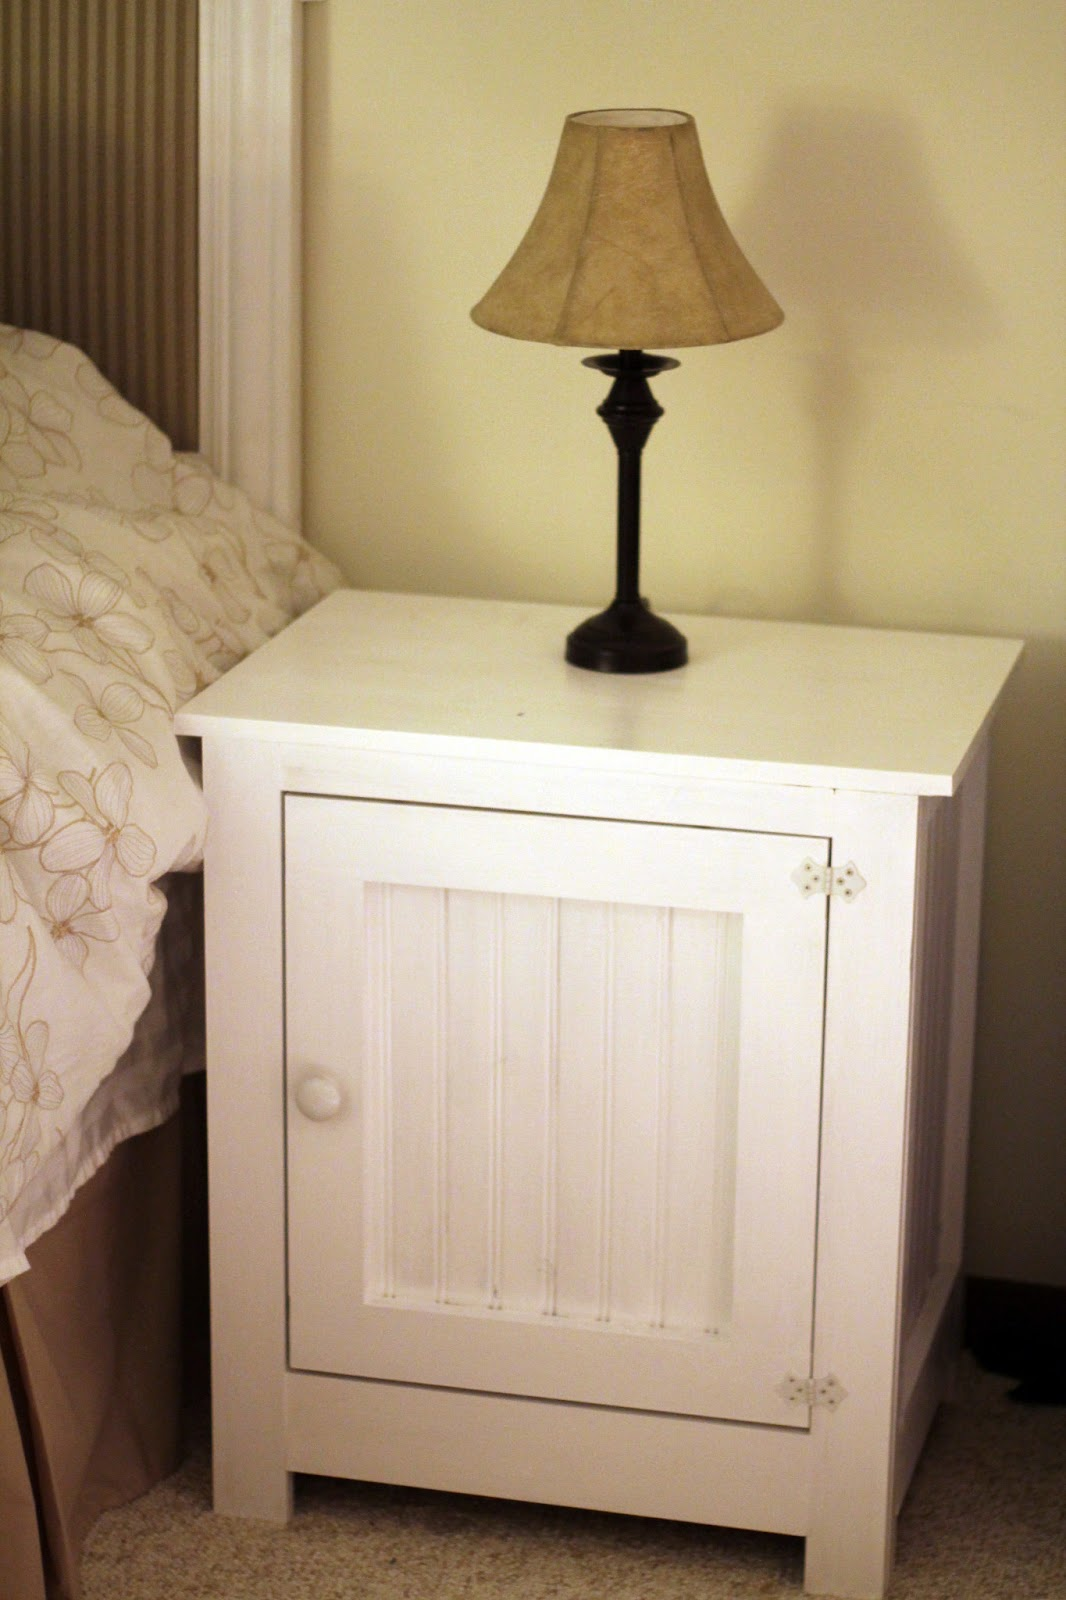 Grounded wife diy nightstand for Simple nightstand designs